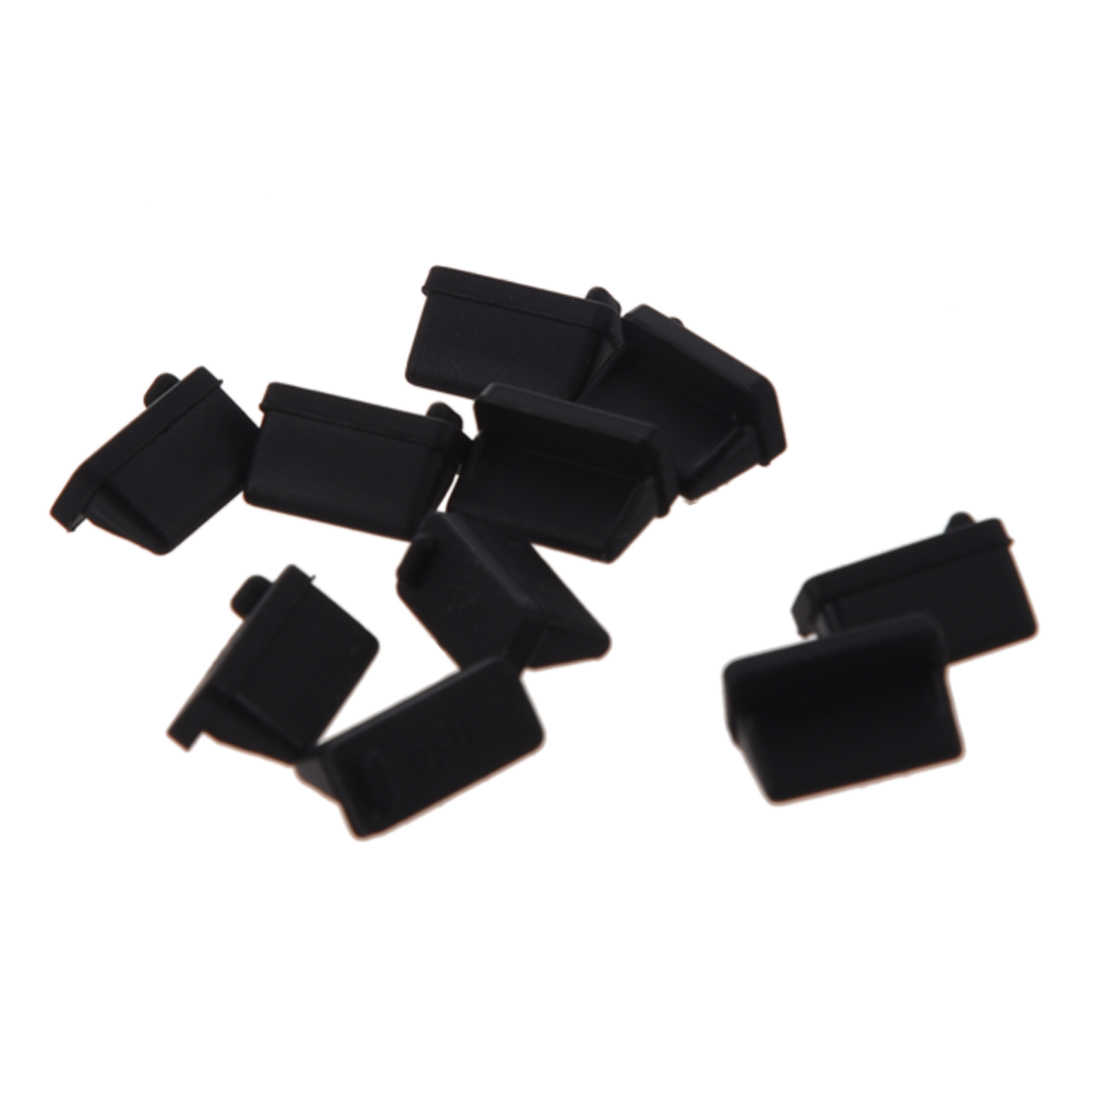 10 Pcs Silikon Port USB Plug Dustproof Plug Sumbat Perlindungan Hitam-Hot